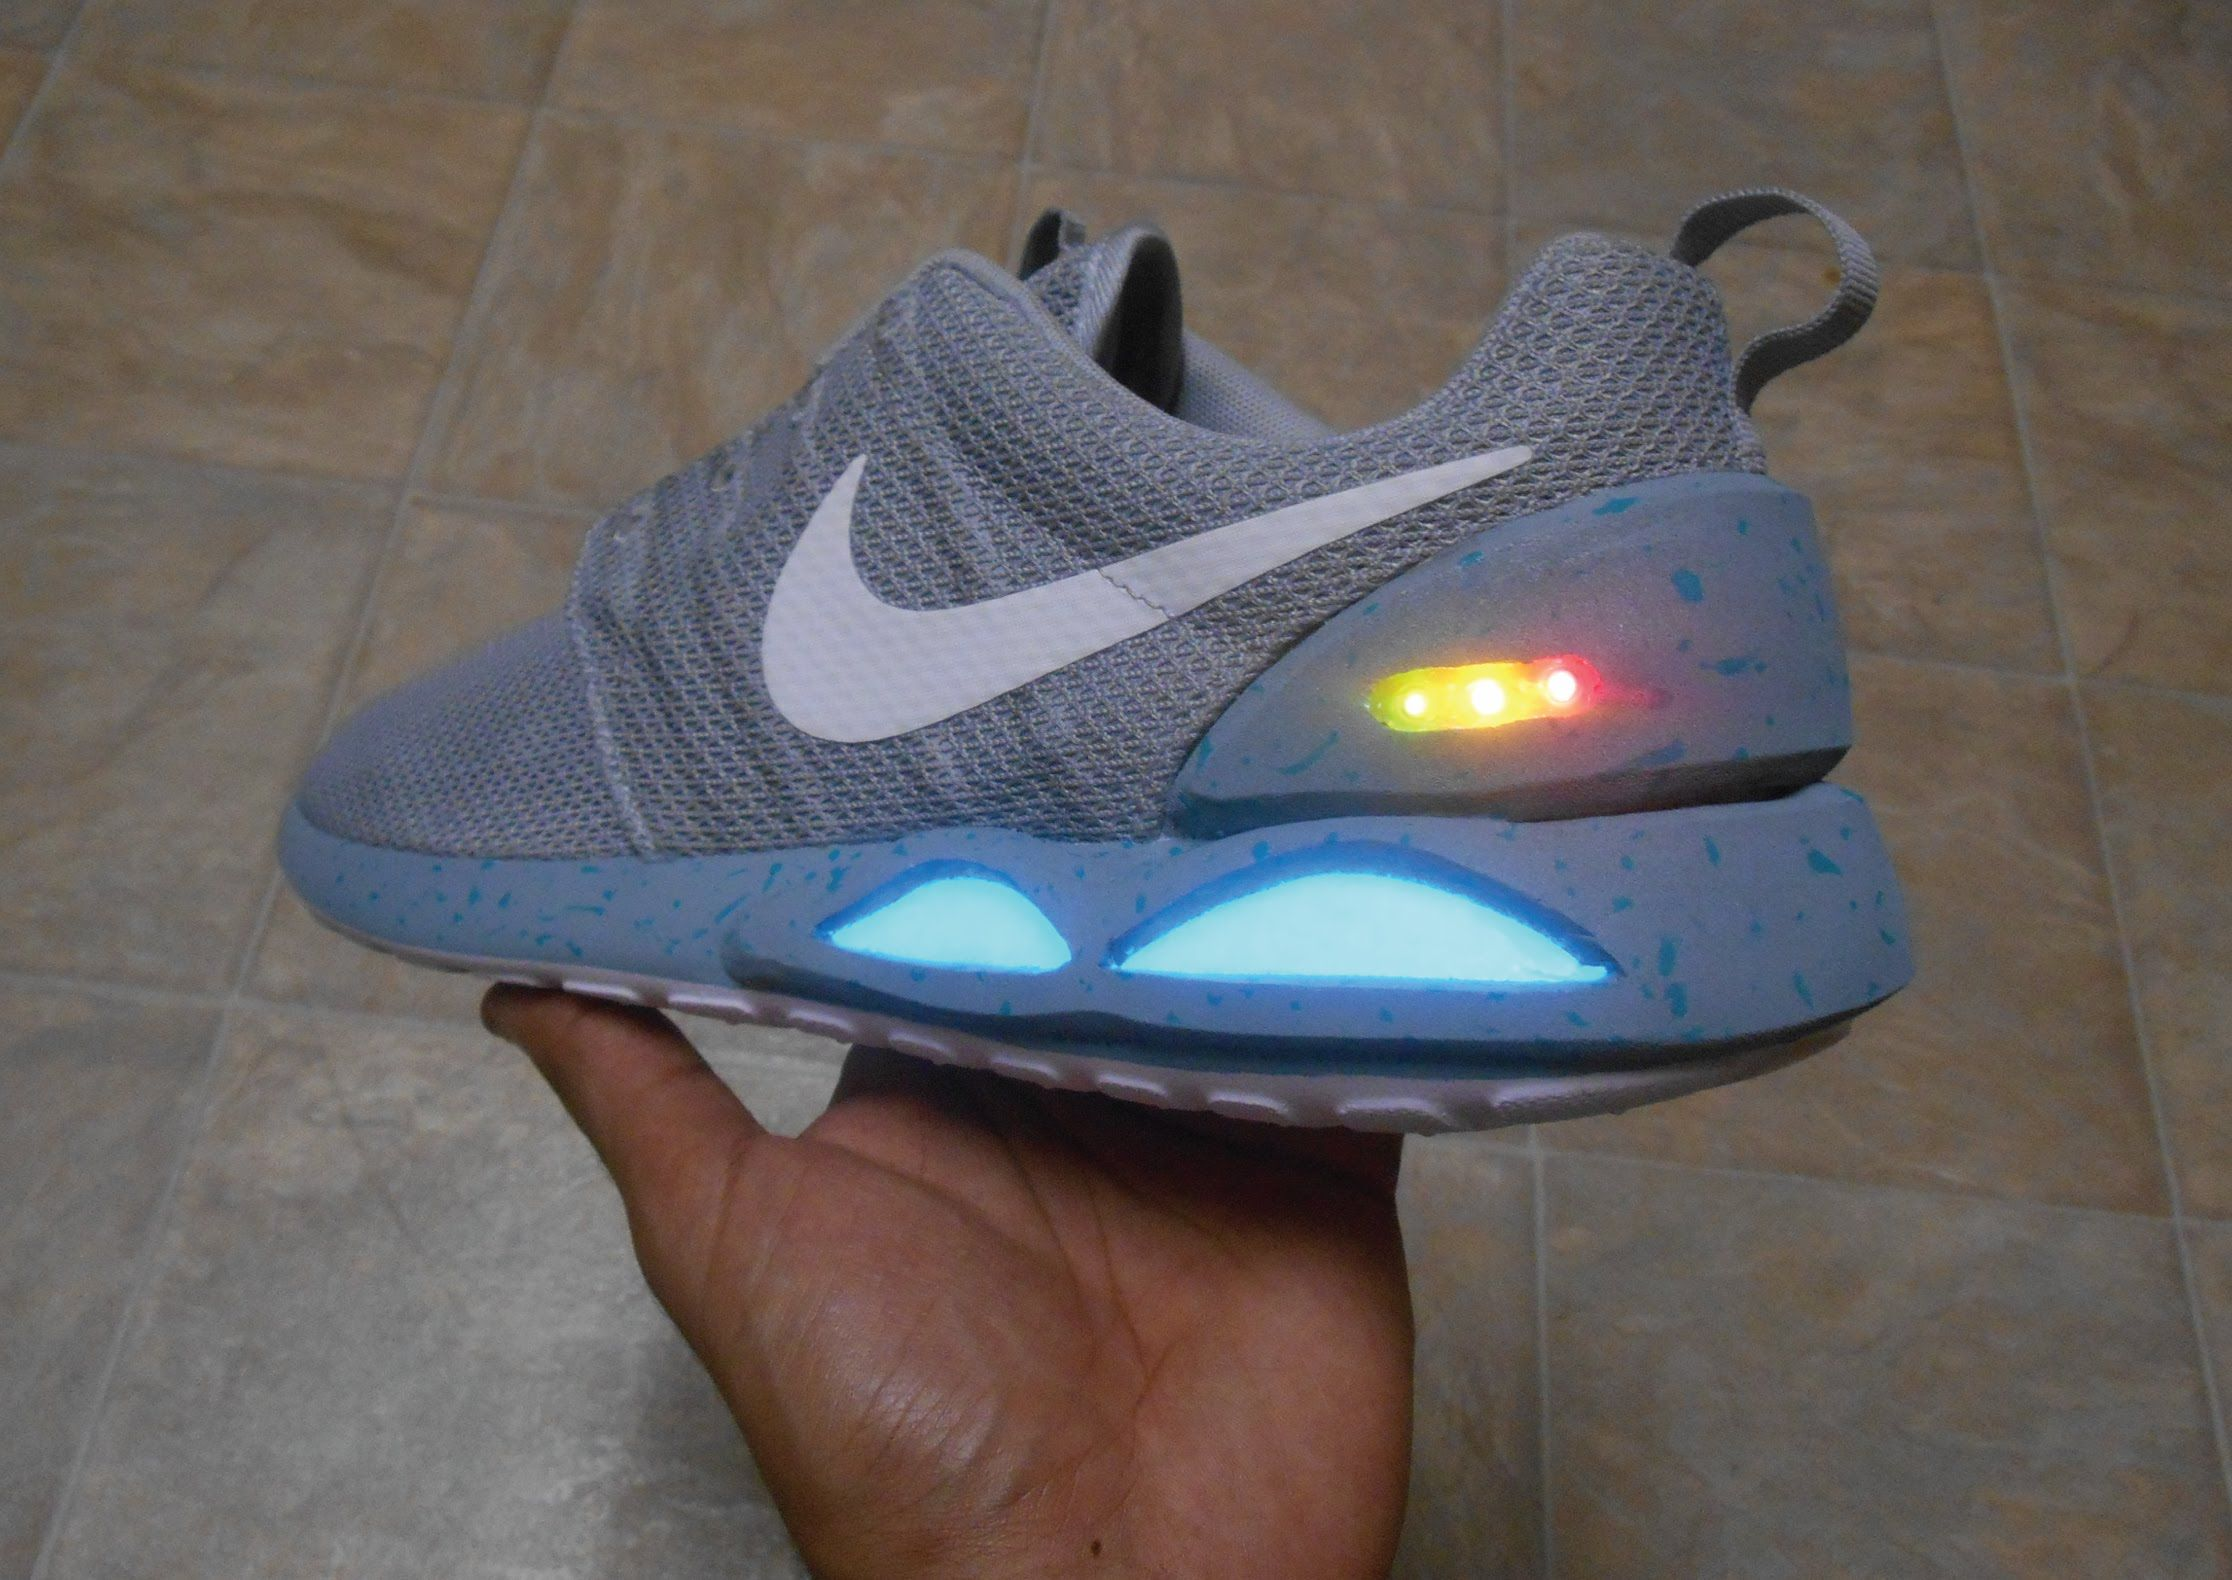 Cheap nike air mag china - Nike Air Mag Roshe Run